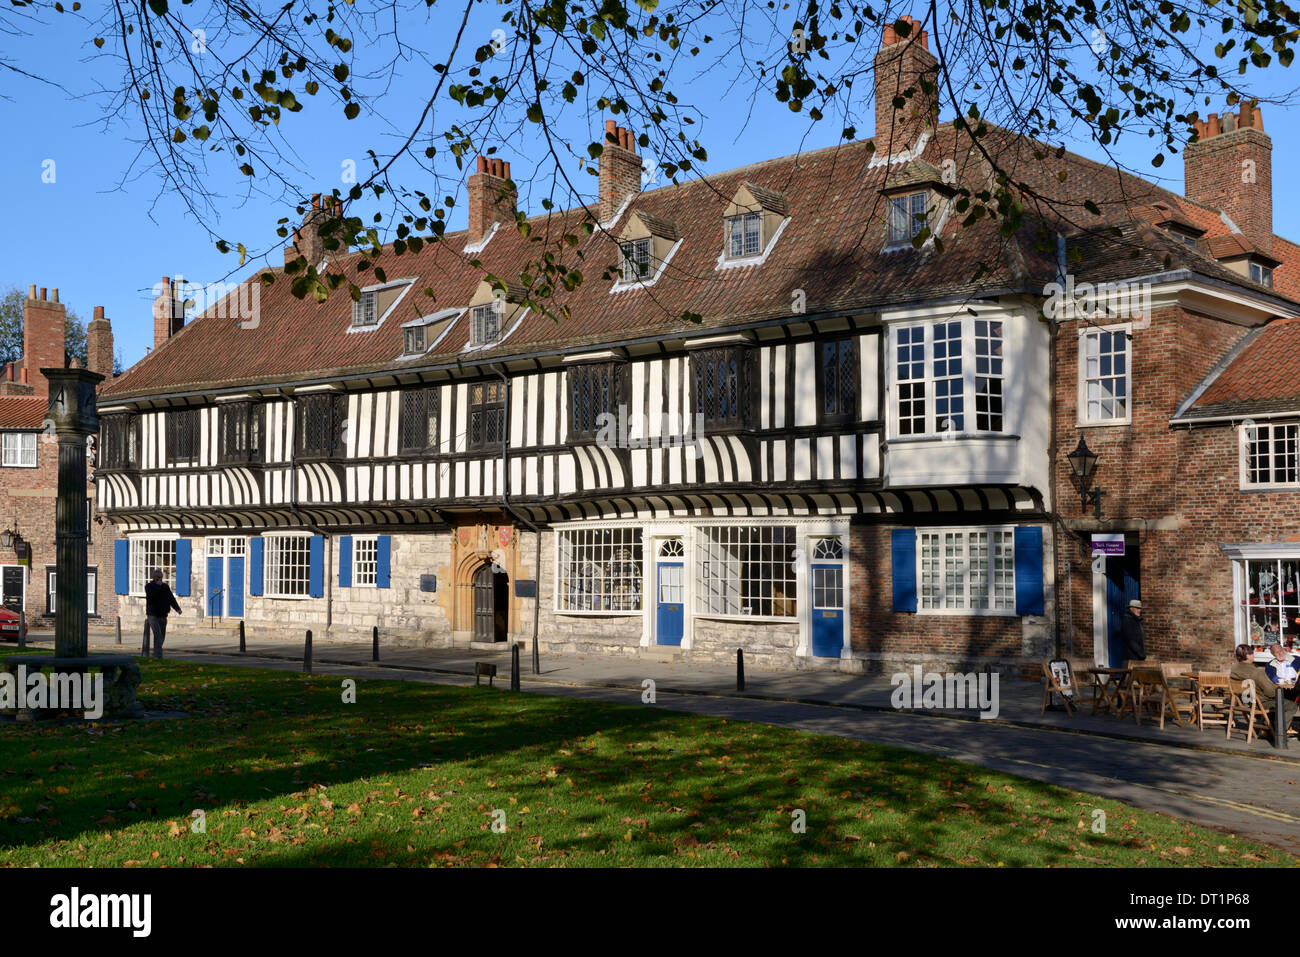 Medieval half-timbered buildings of St. William's College, College Street, York, Yorkshire, England, United Kingdom, Europe - Stock Image